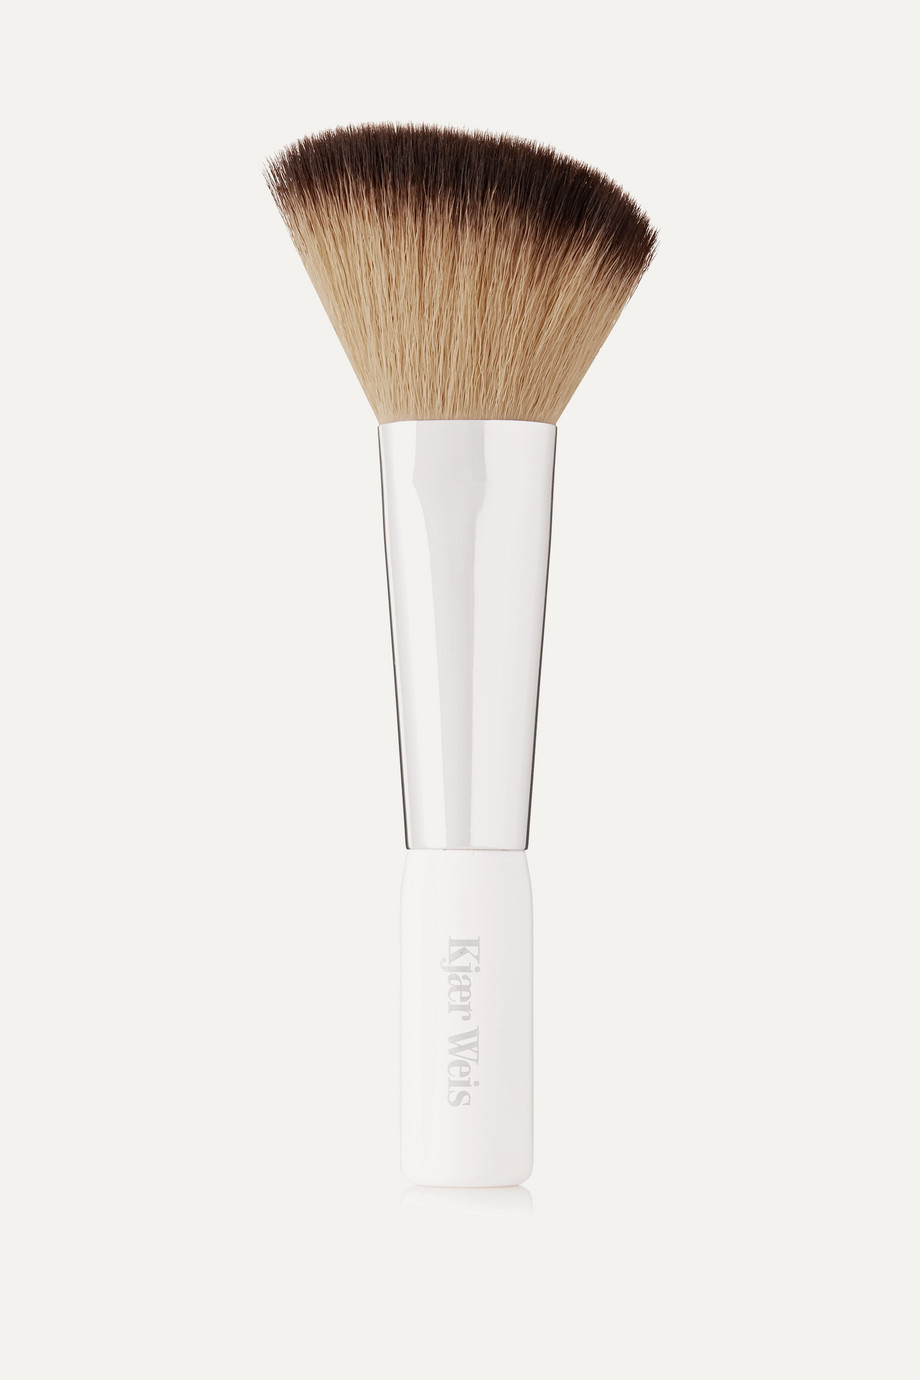 KJAER WEIS + NET SUSTAIN Powder Brush